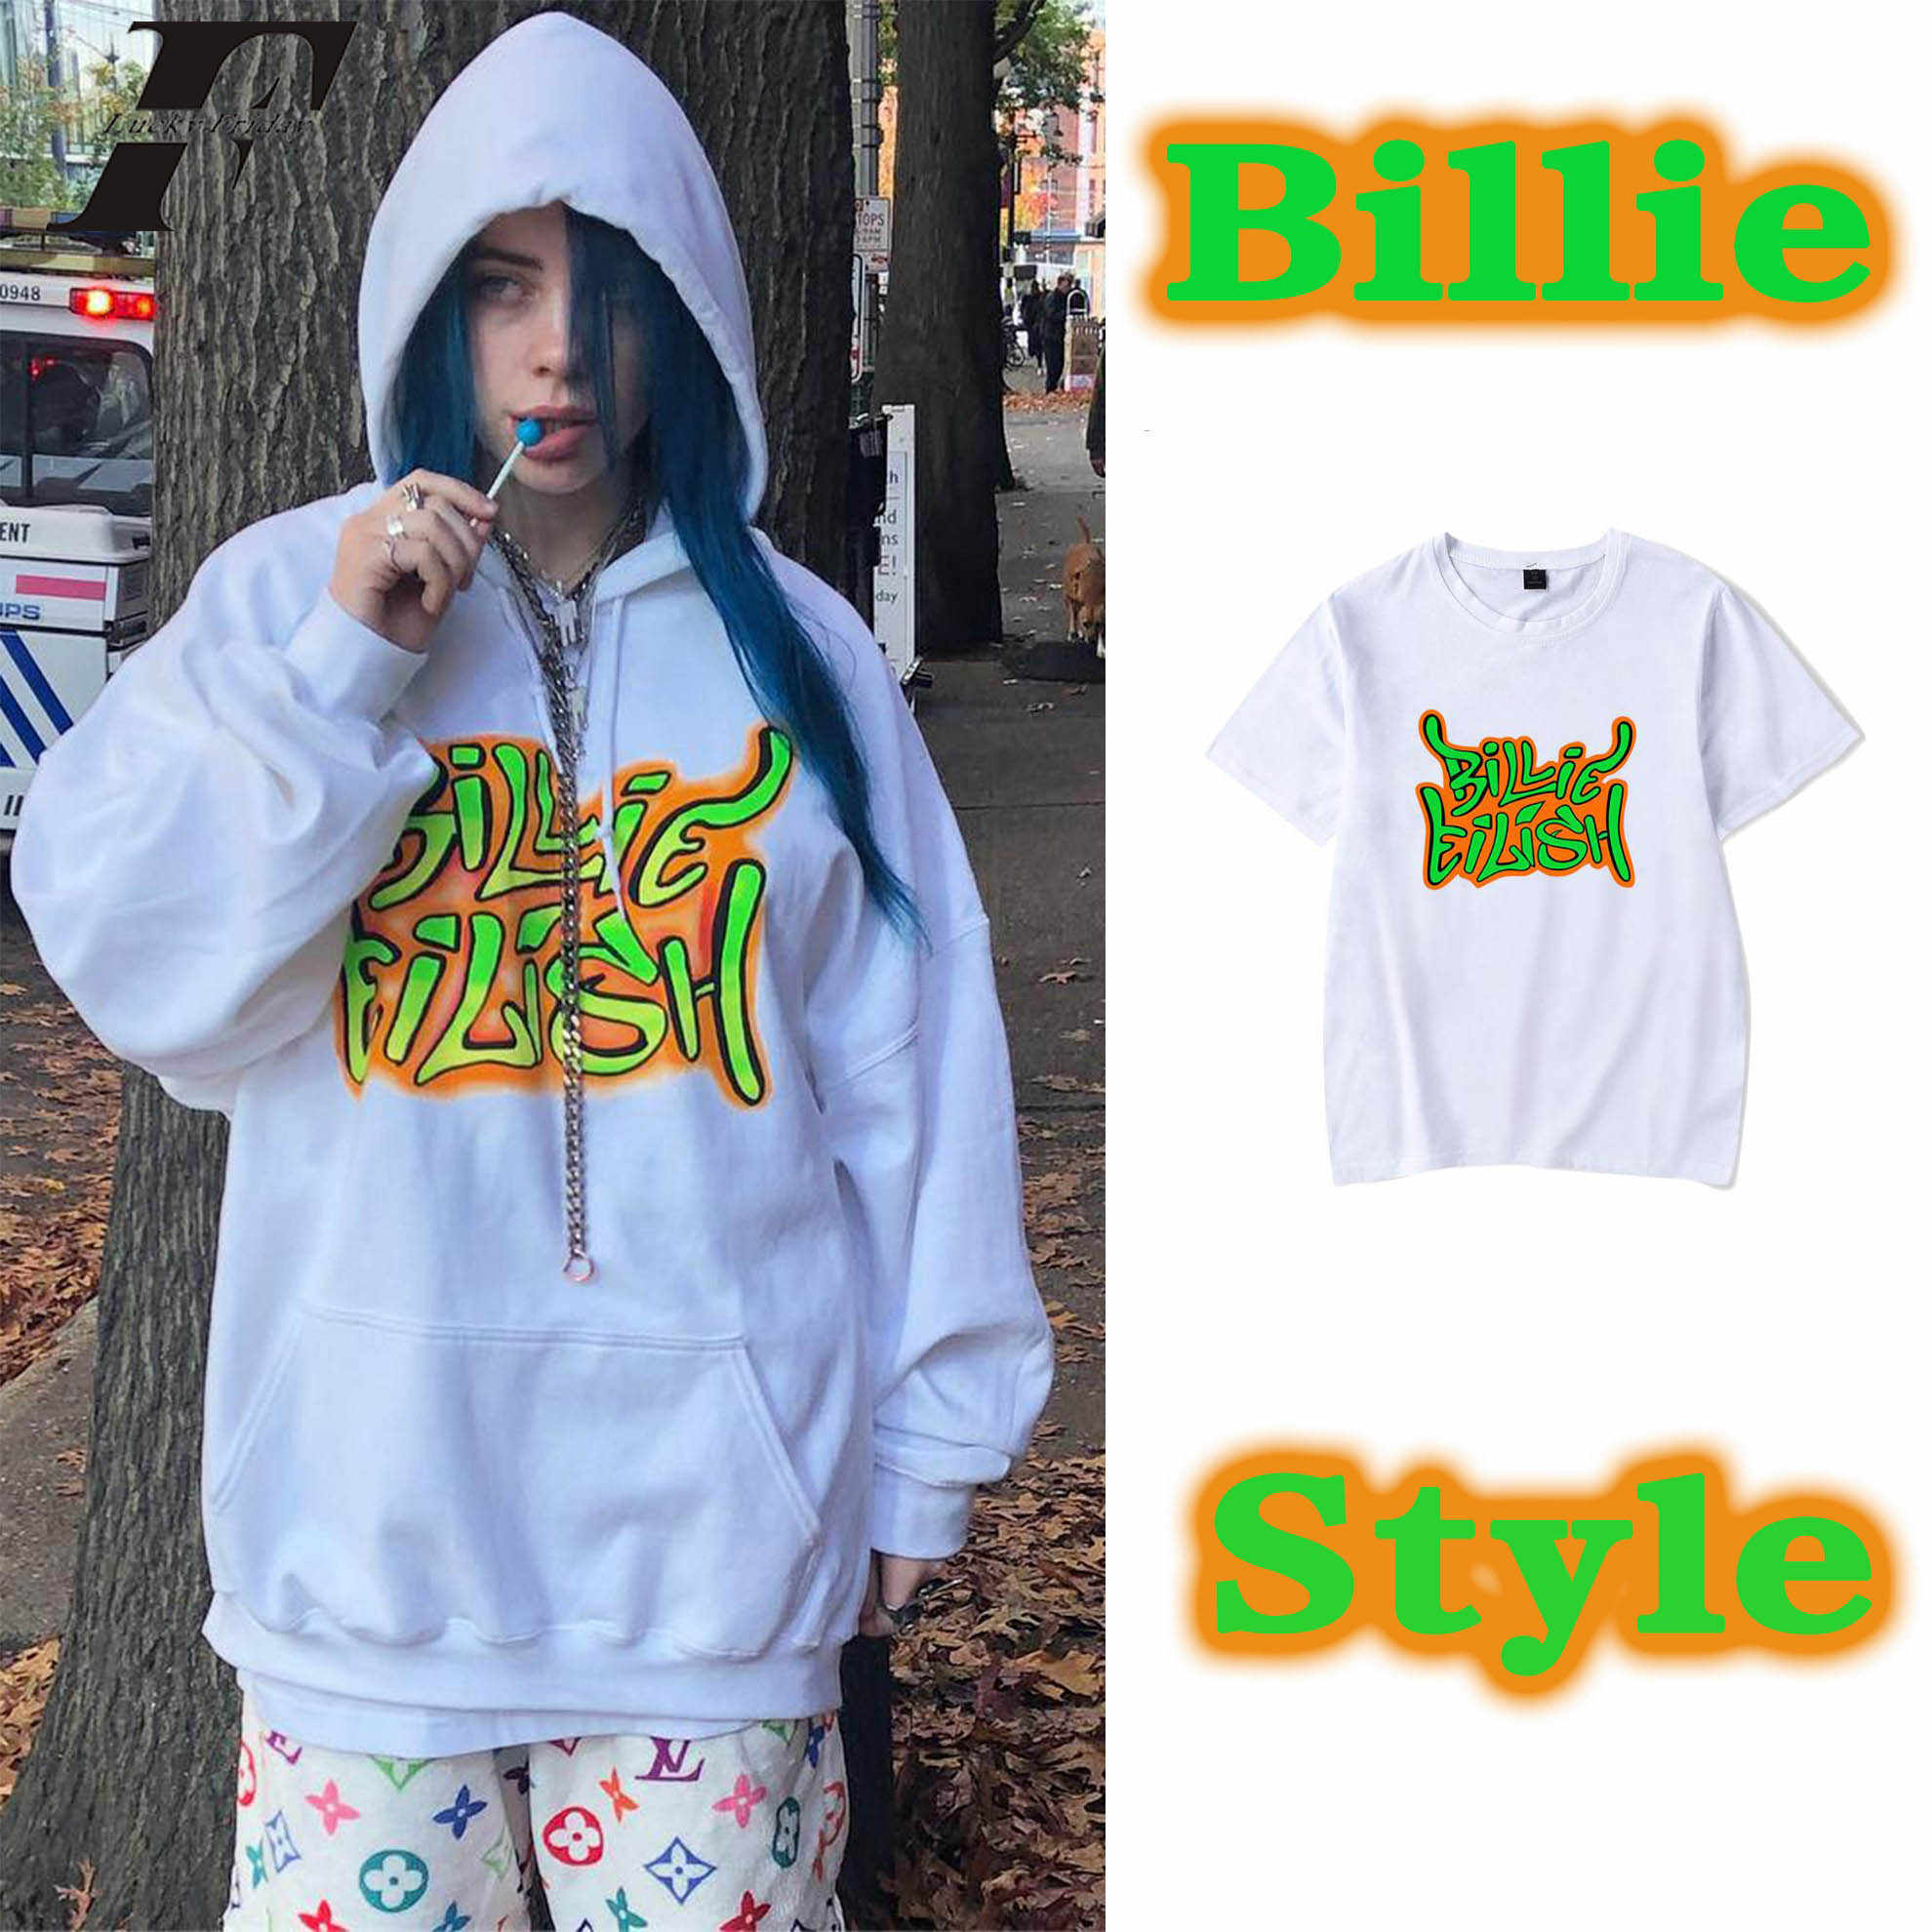 billie eilish t shirt Men women streetwear hip hop Tee Shirt Homme Short Sleeve Men's T Shirts Male TShirts camisetas hombre